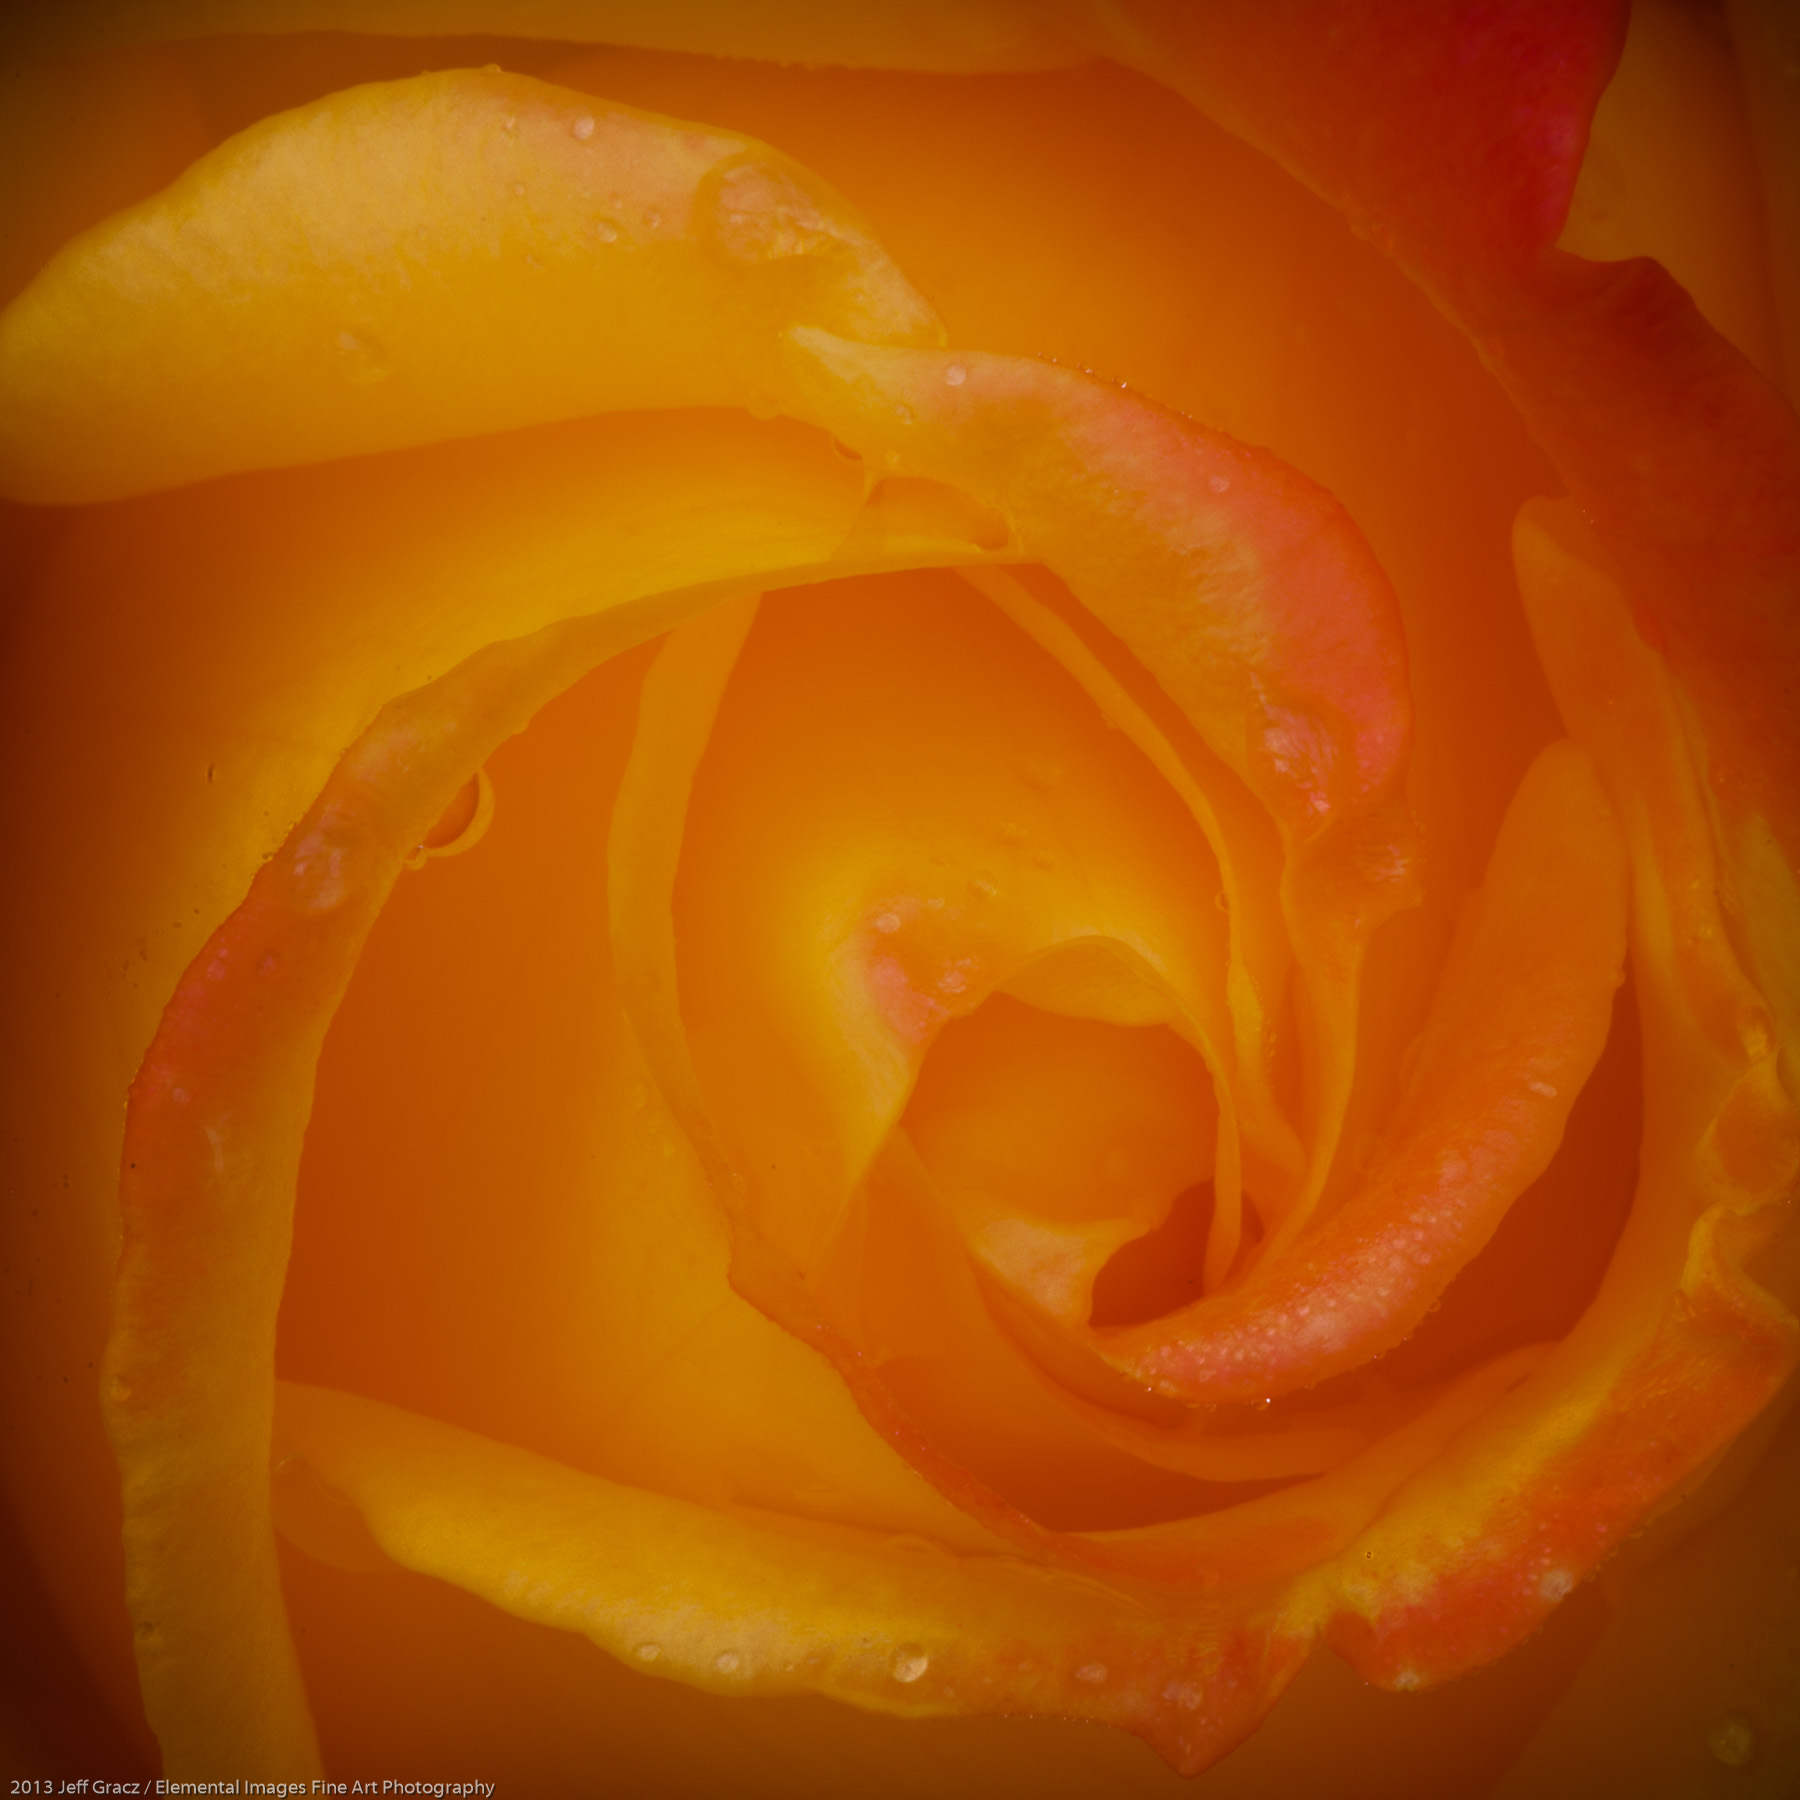 Roses XXXVIX | Portland | OR | USA - © 2013 Jeff Gracz / Elemental Images Fine Art Photography - All Rights Reserved Worldwide